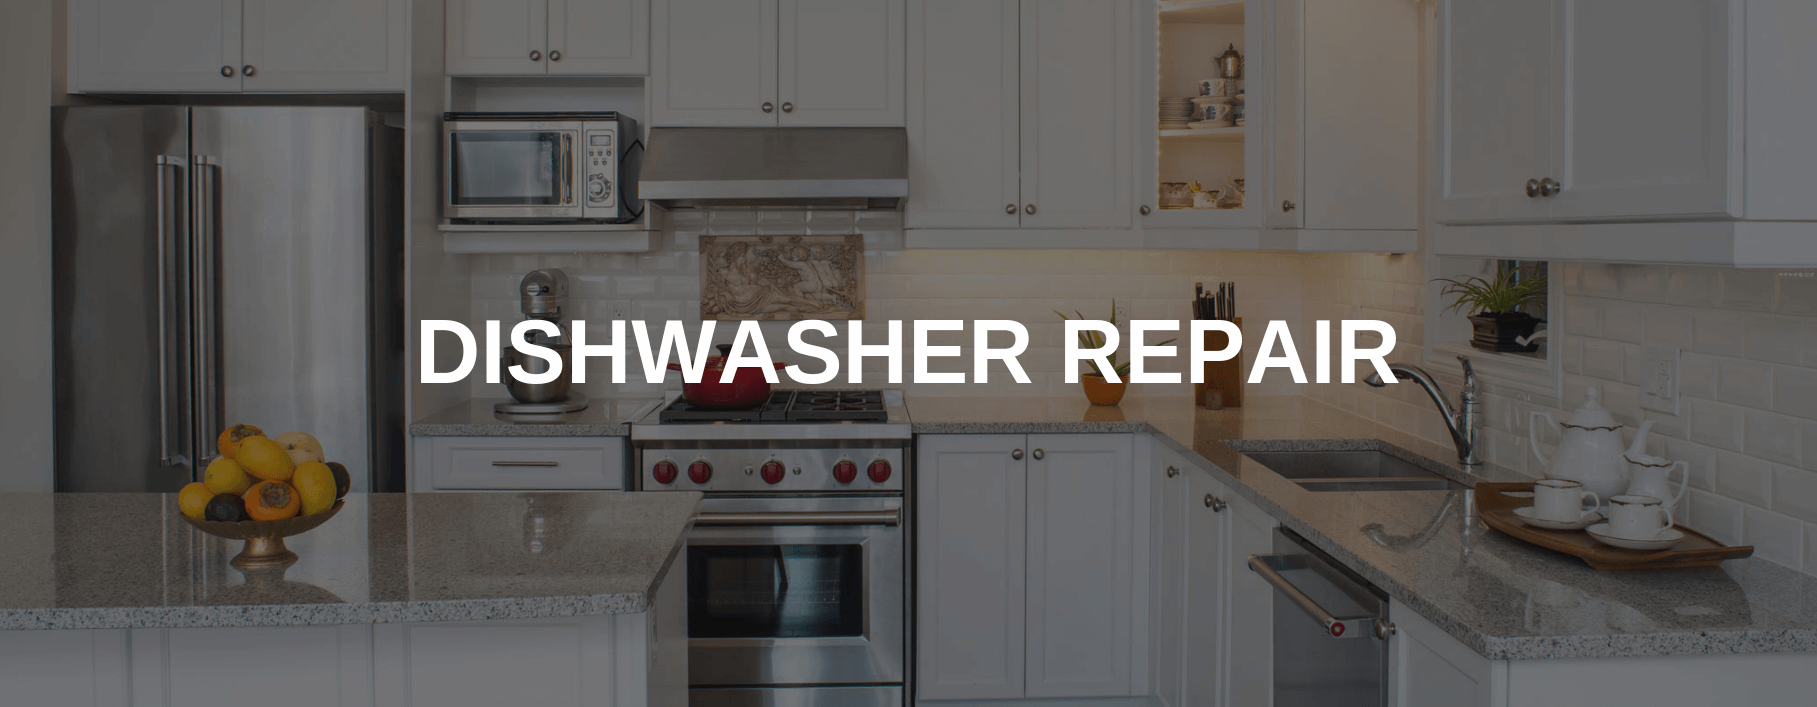 dishwasher repair olathe